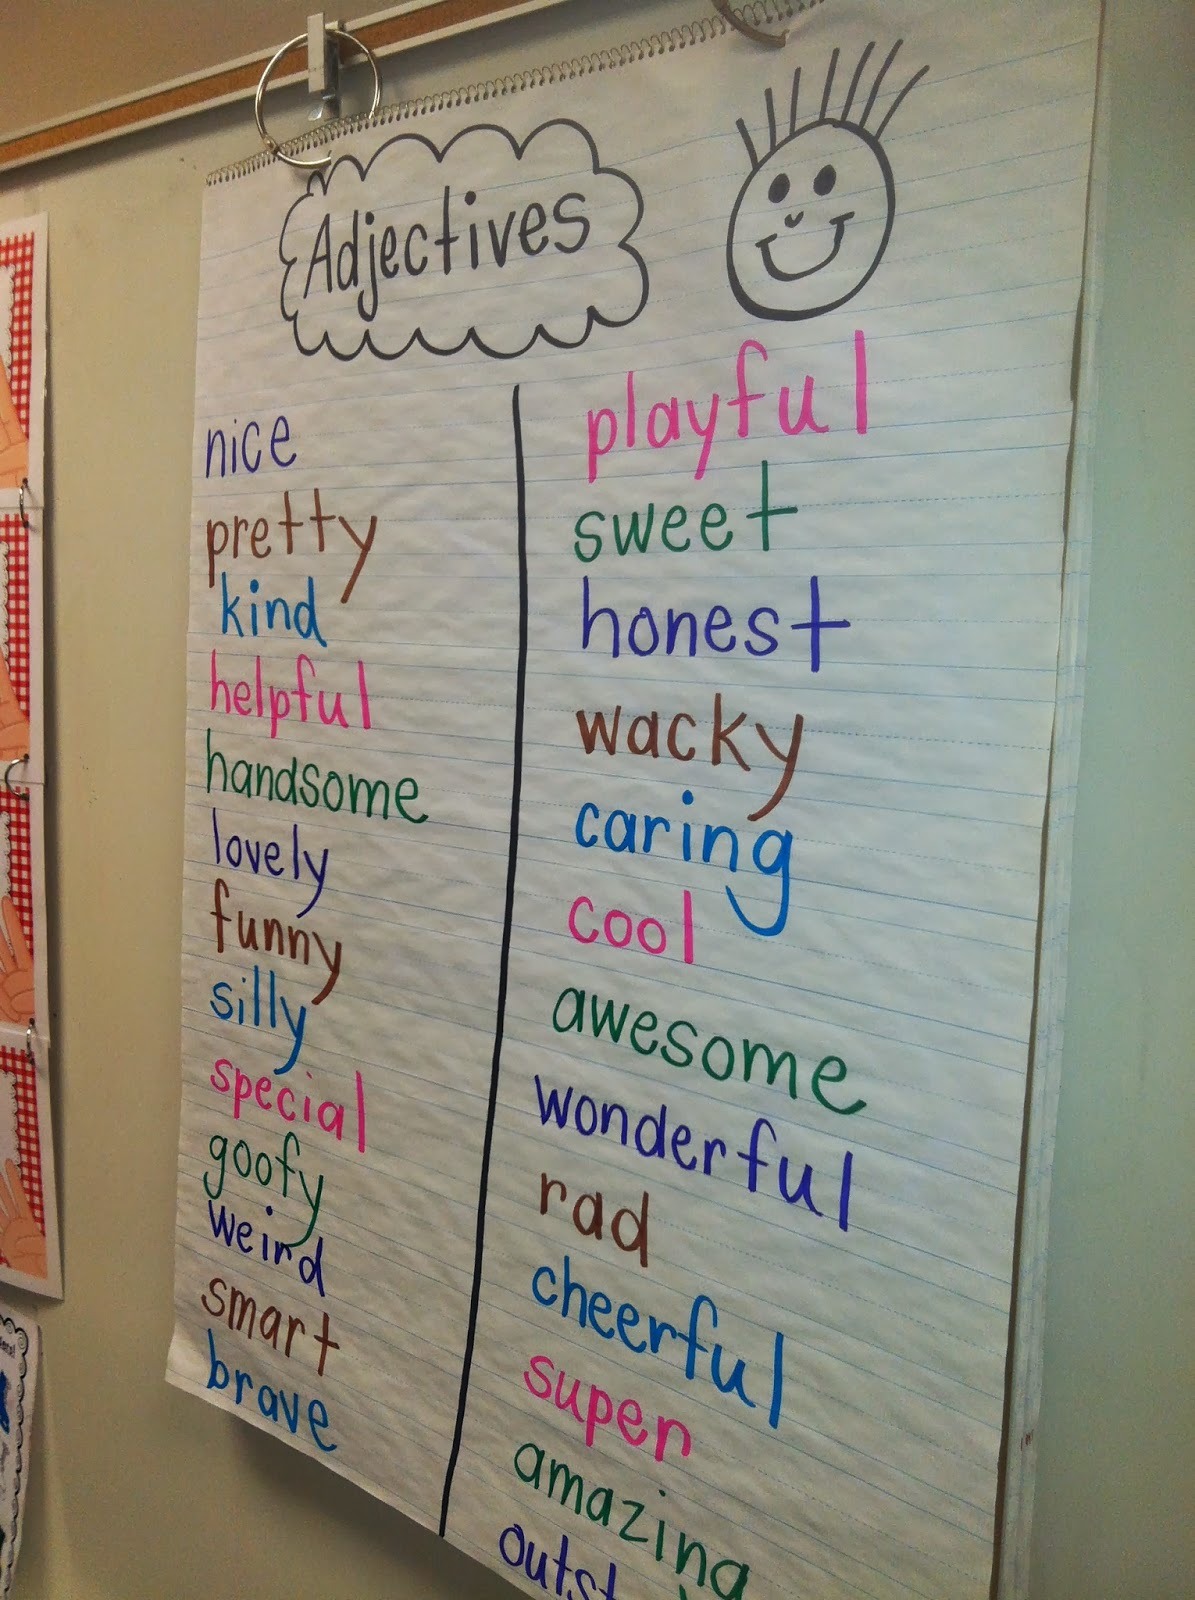 Academic Writing Adjectives List